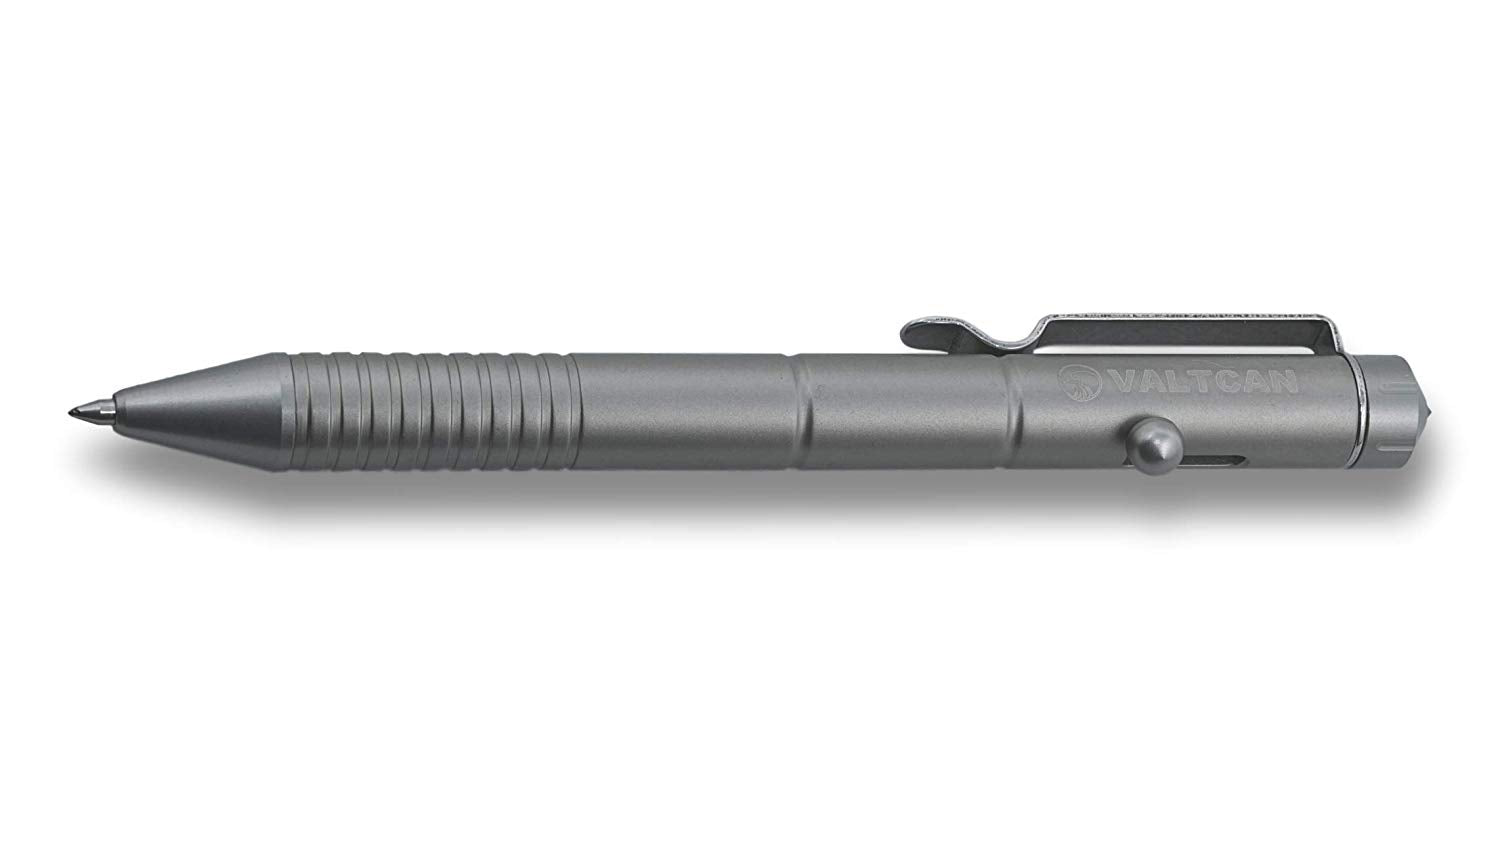 Valtcan Impel Titanium Bolt Pen EDC Military Matte Space Grey